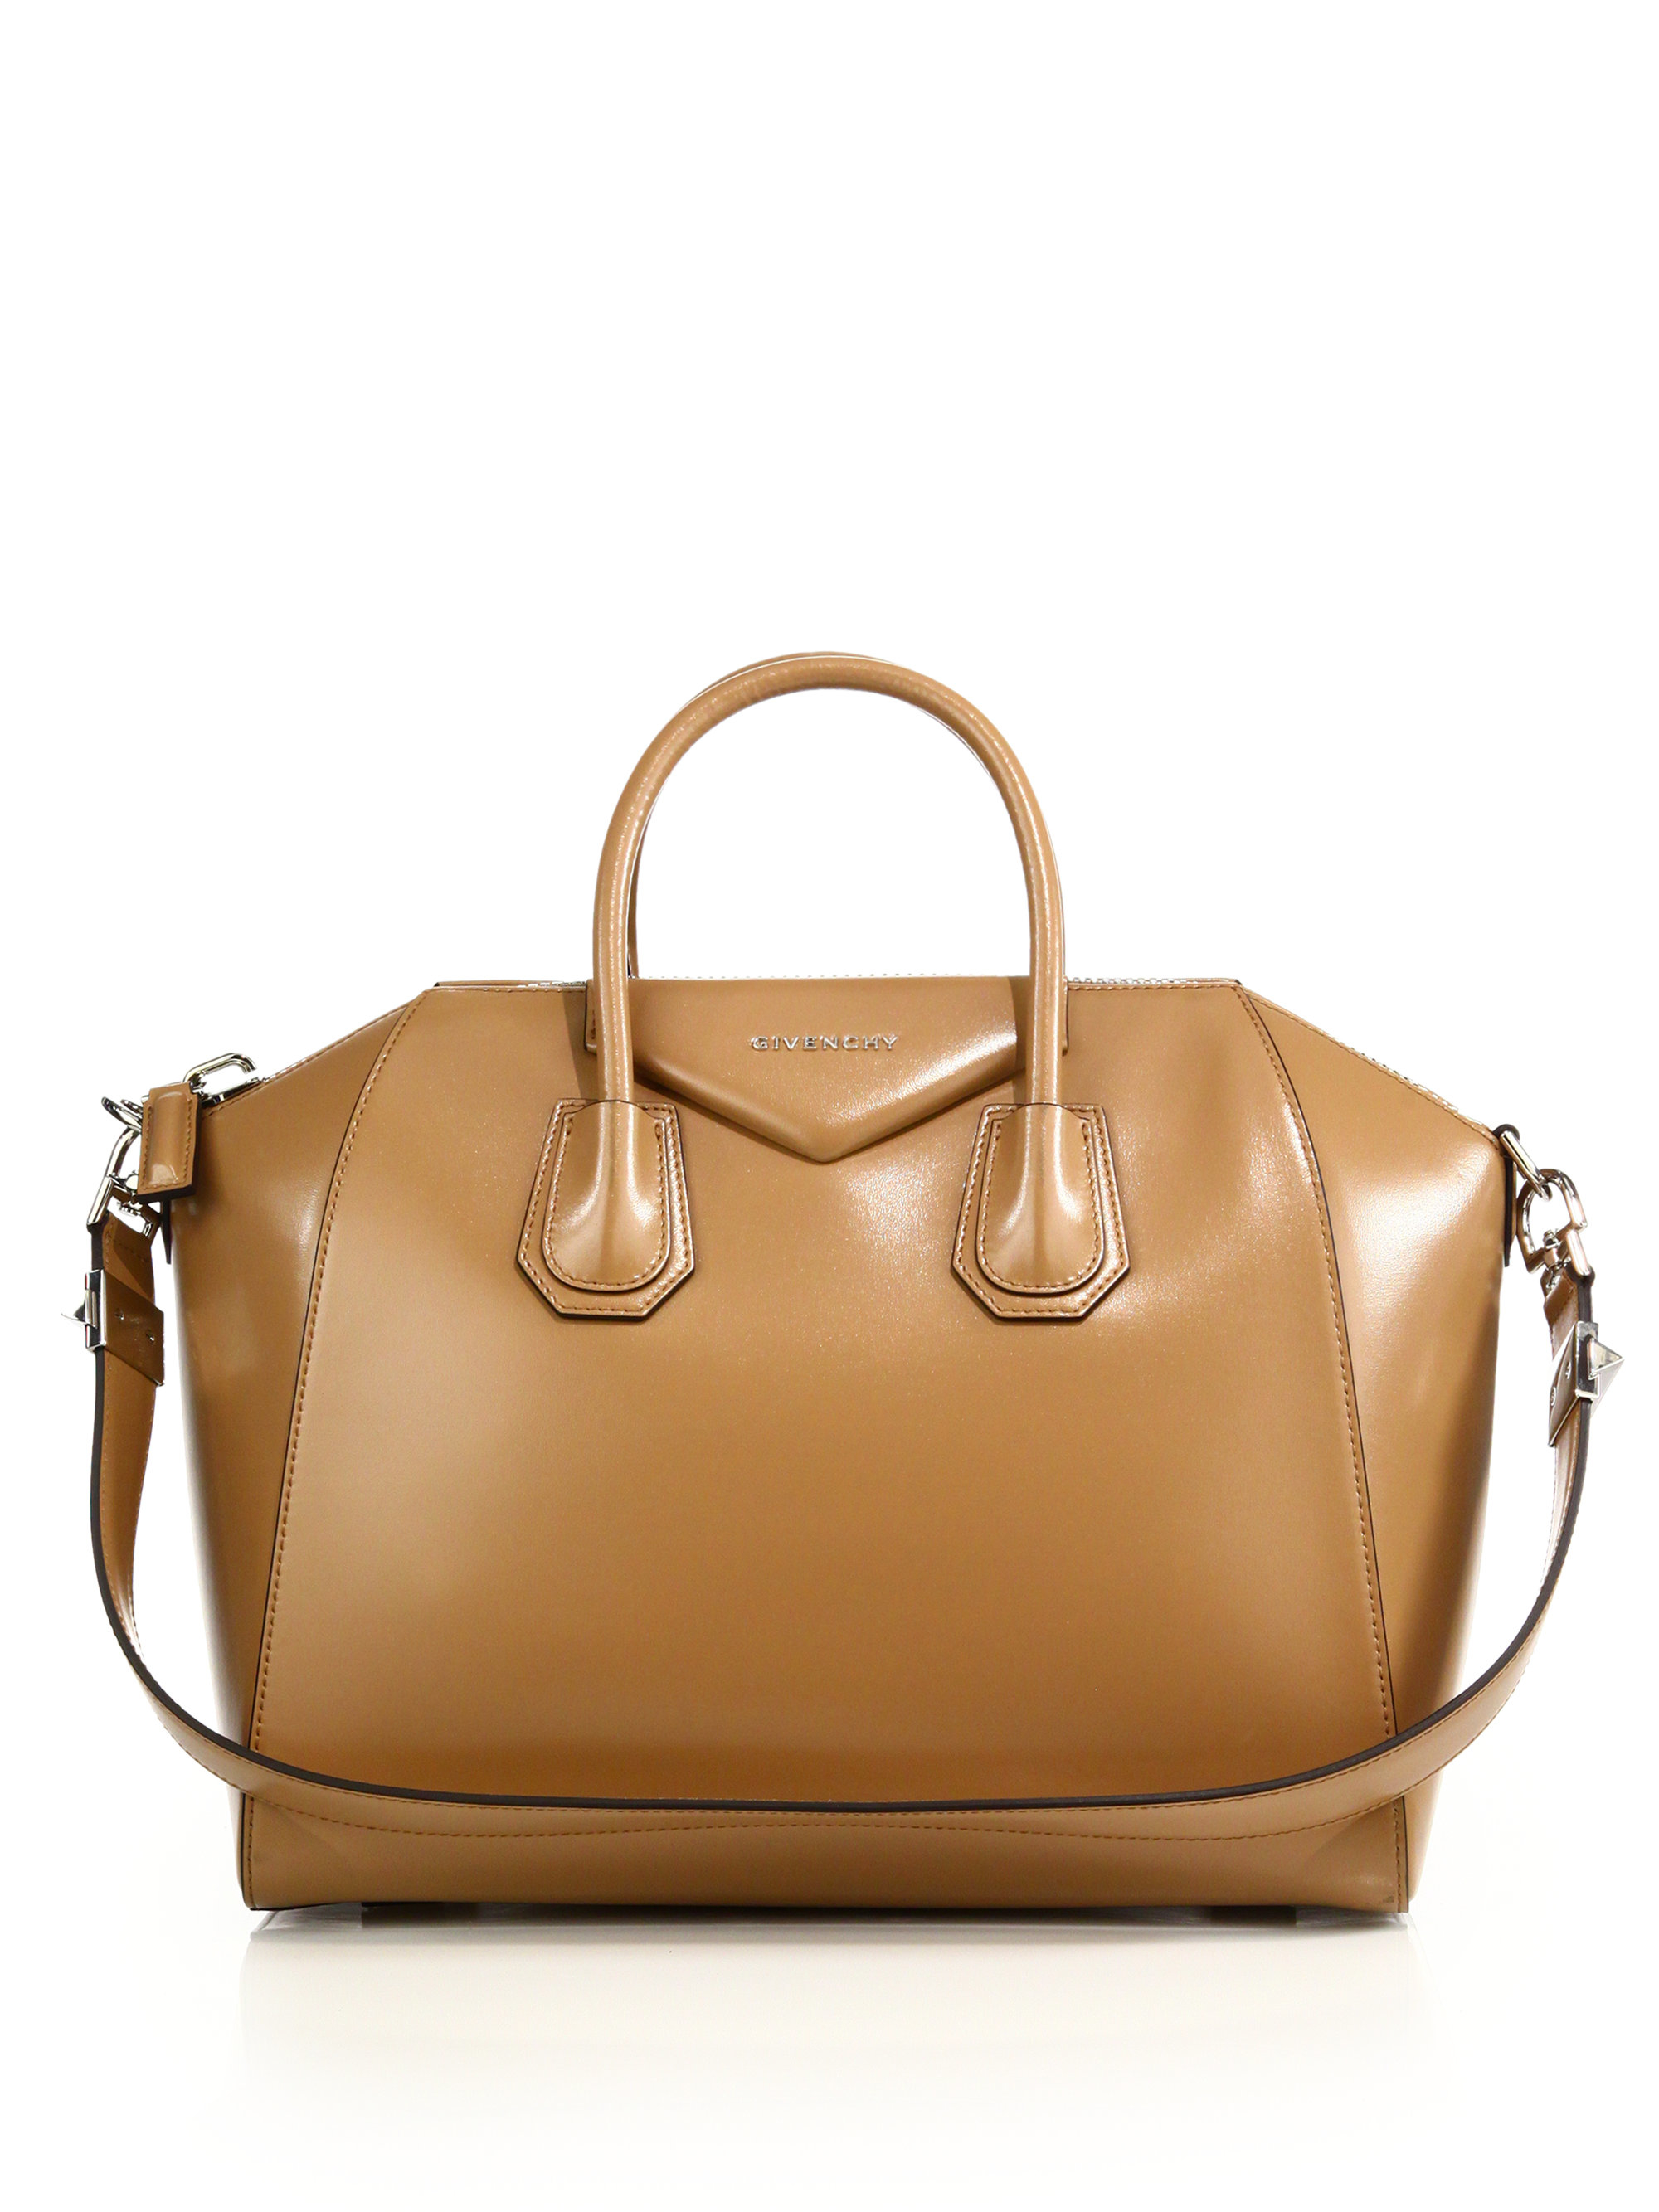 Givenchy Antigona Bag Glazed Leather Medium 8BGWNLV